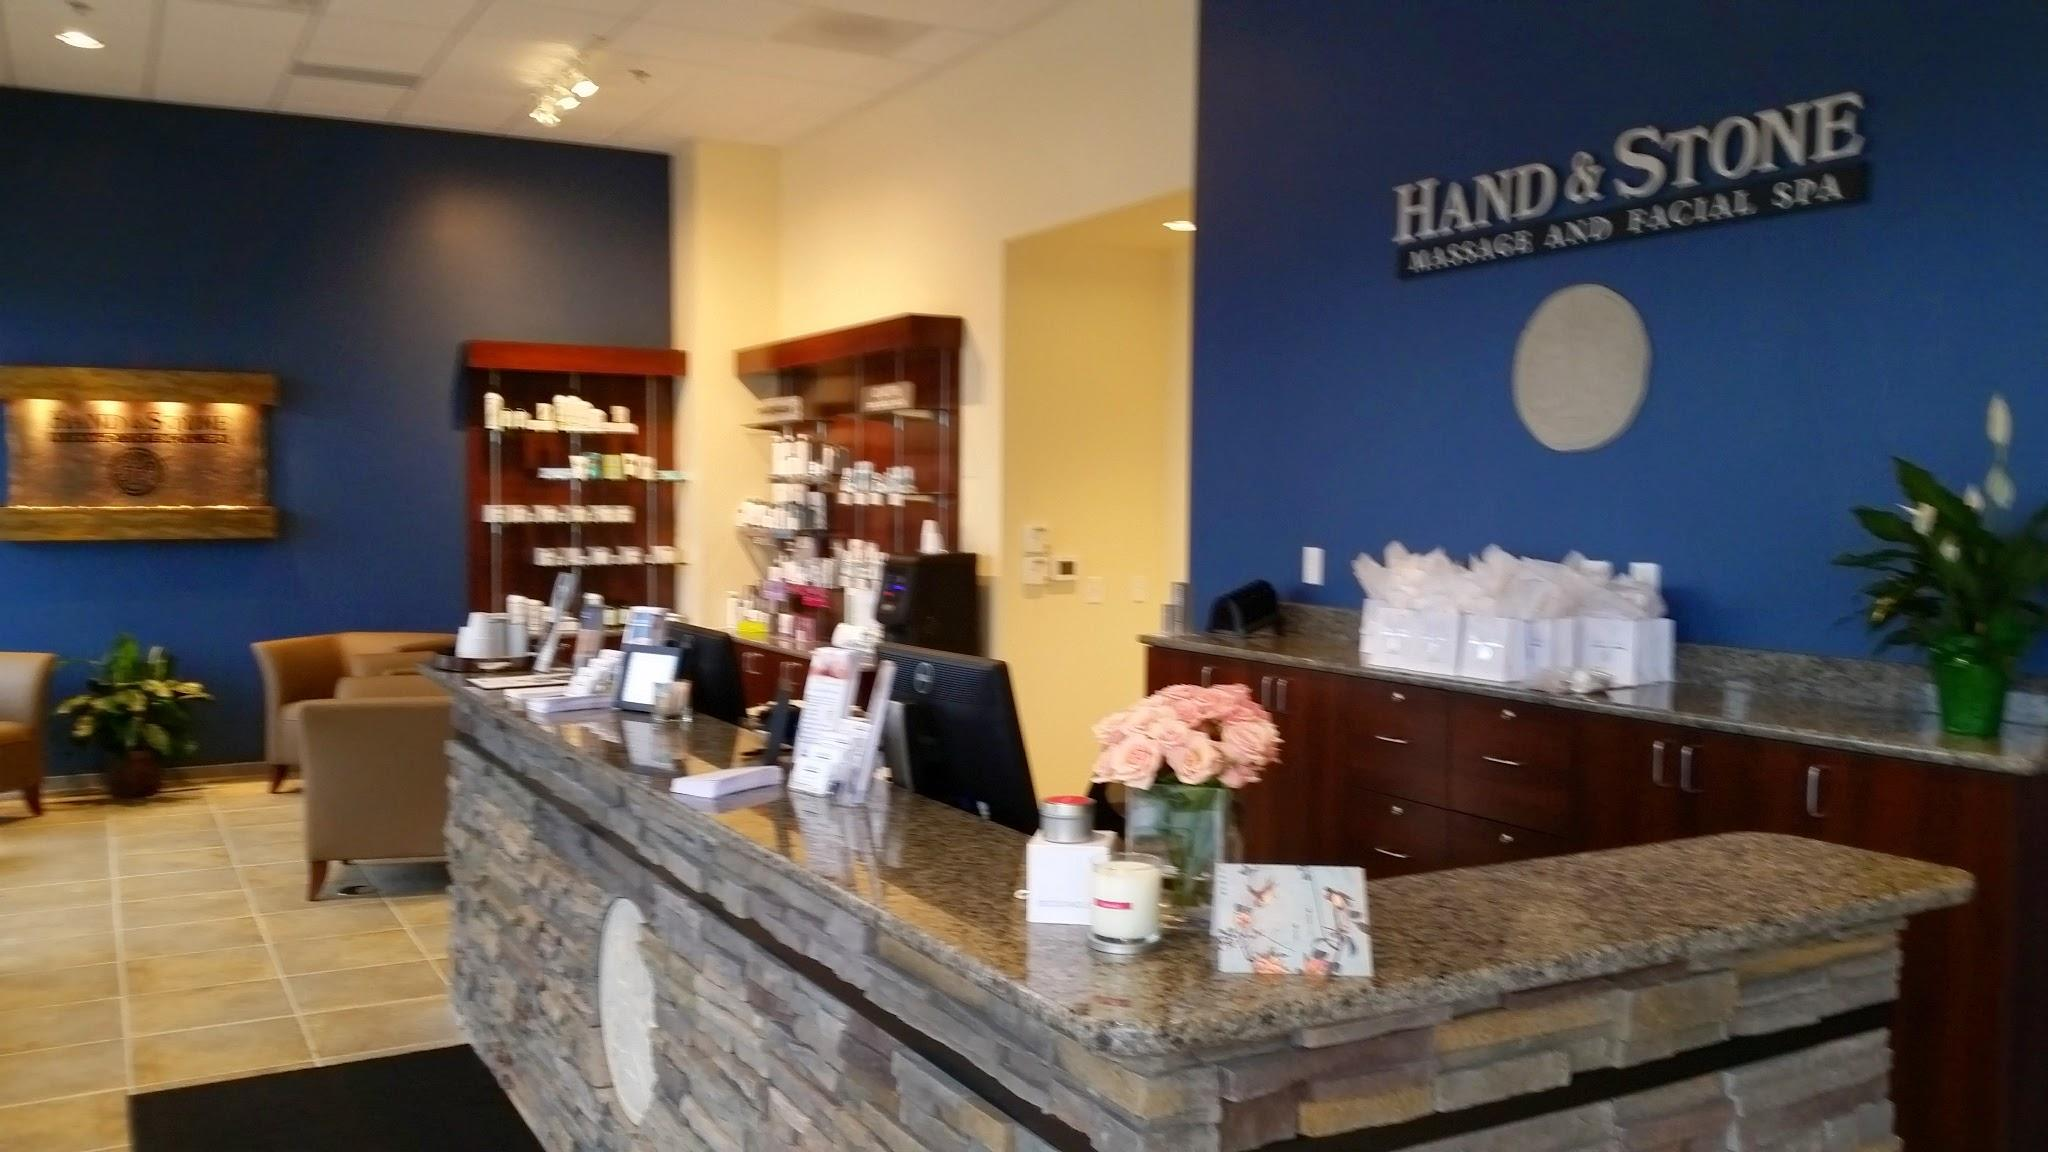 Welcome to Hand & Stone Lobby